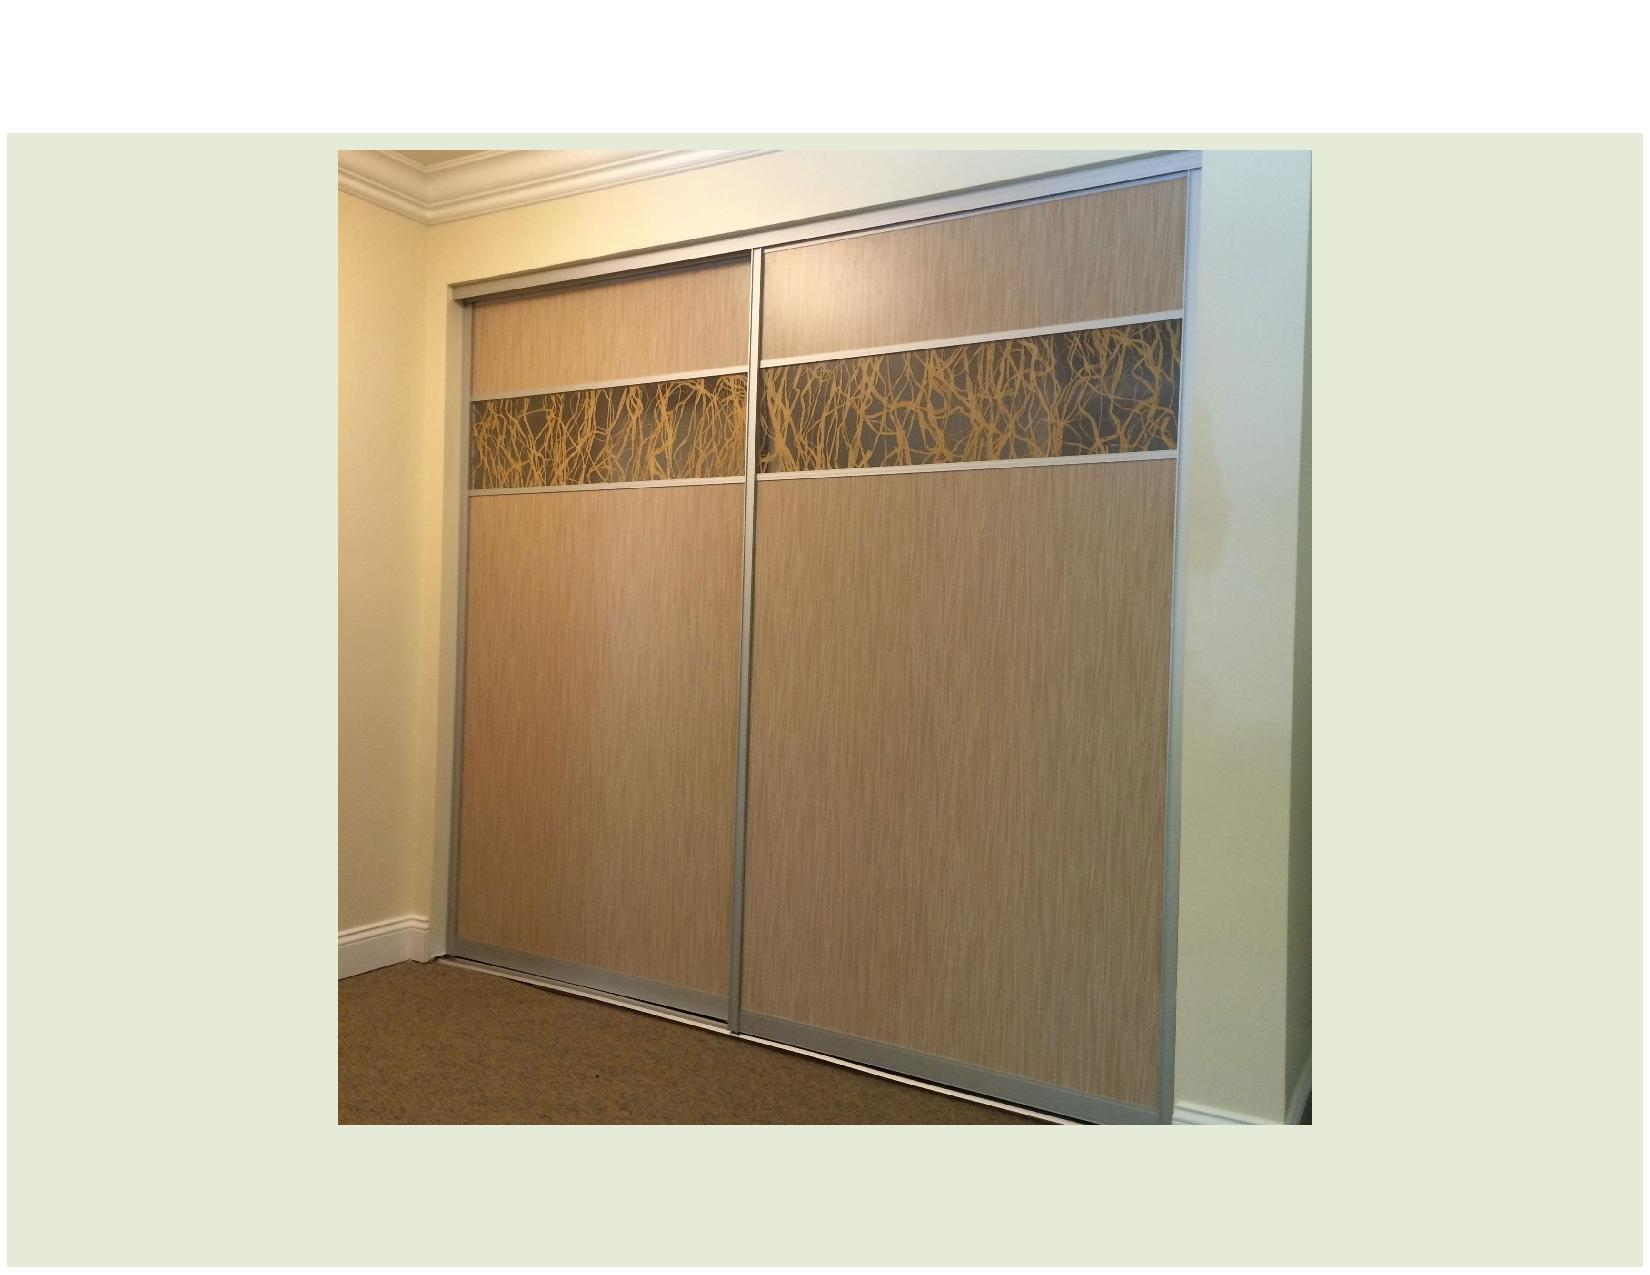 2014-06-27_Sliding Doors_HPL with Lumicor Decorative Resin-PX-Cropped